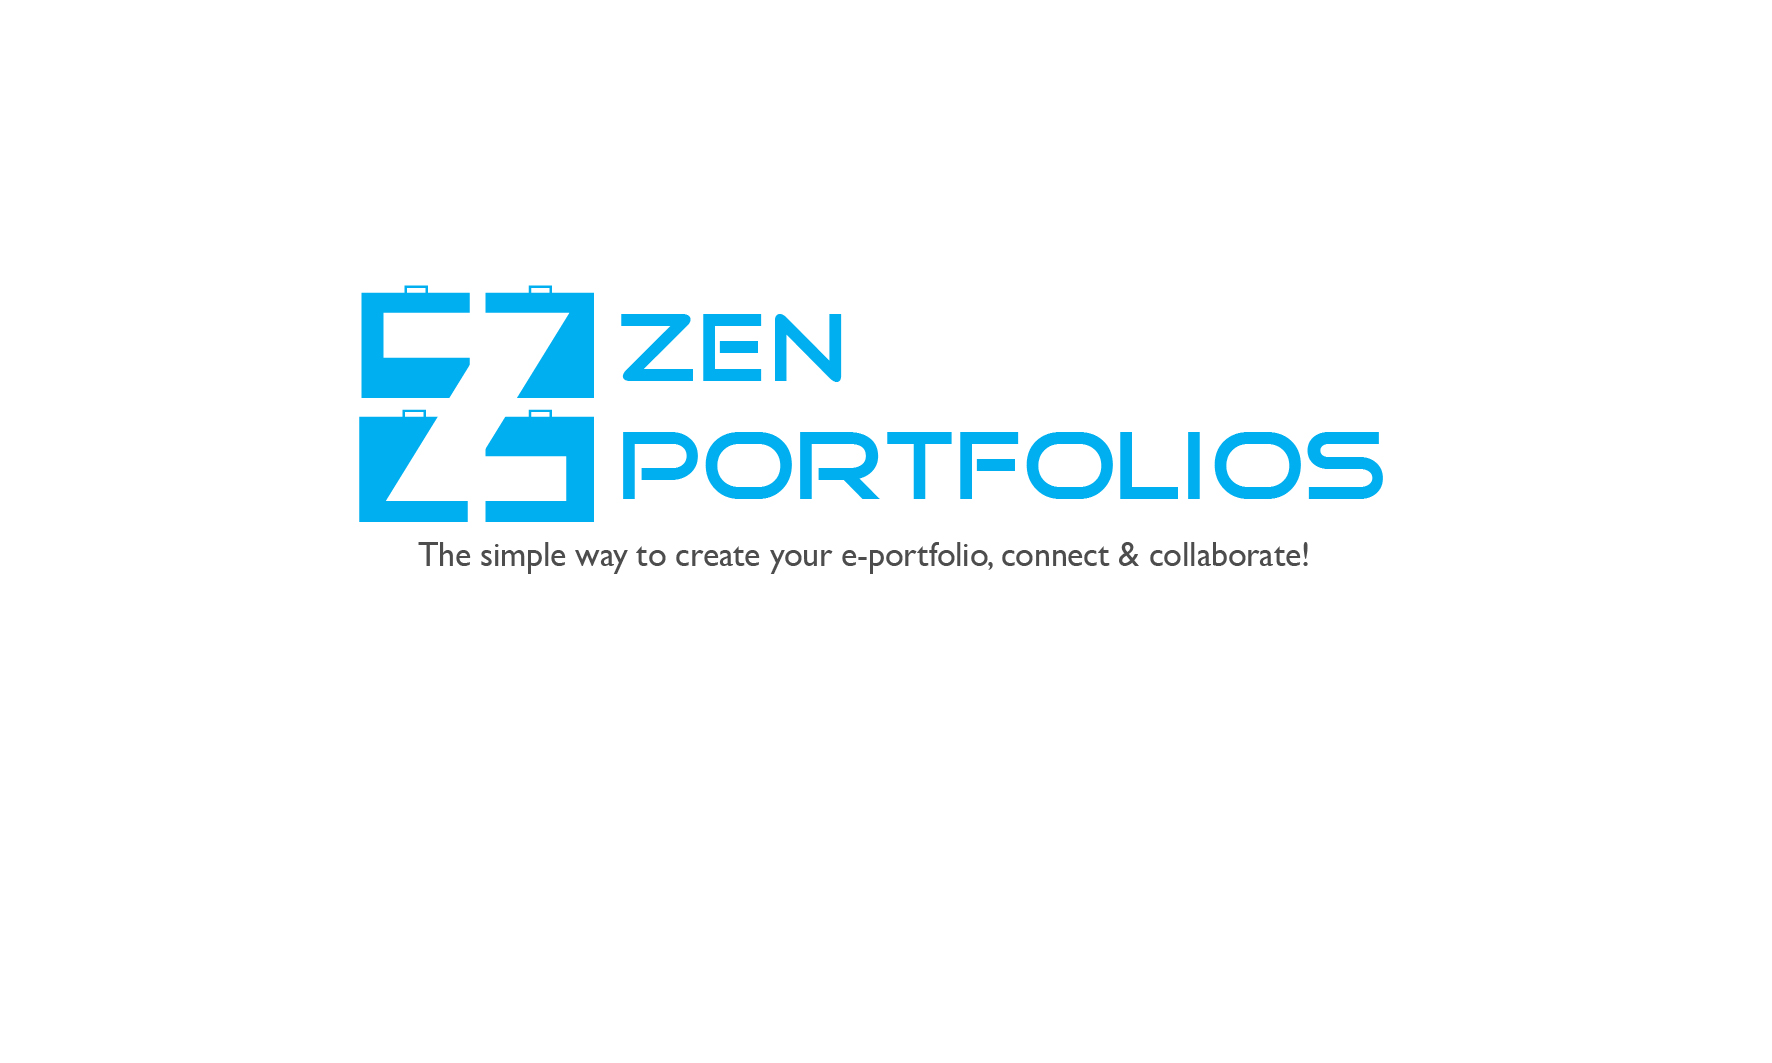 Logo Design by 3draw - Entry No. 73 in the Logo Design Contest New Logo Design for ZEN Portfolios.